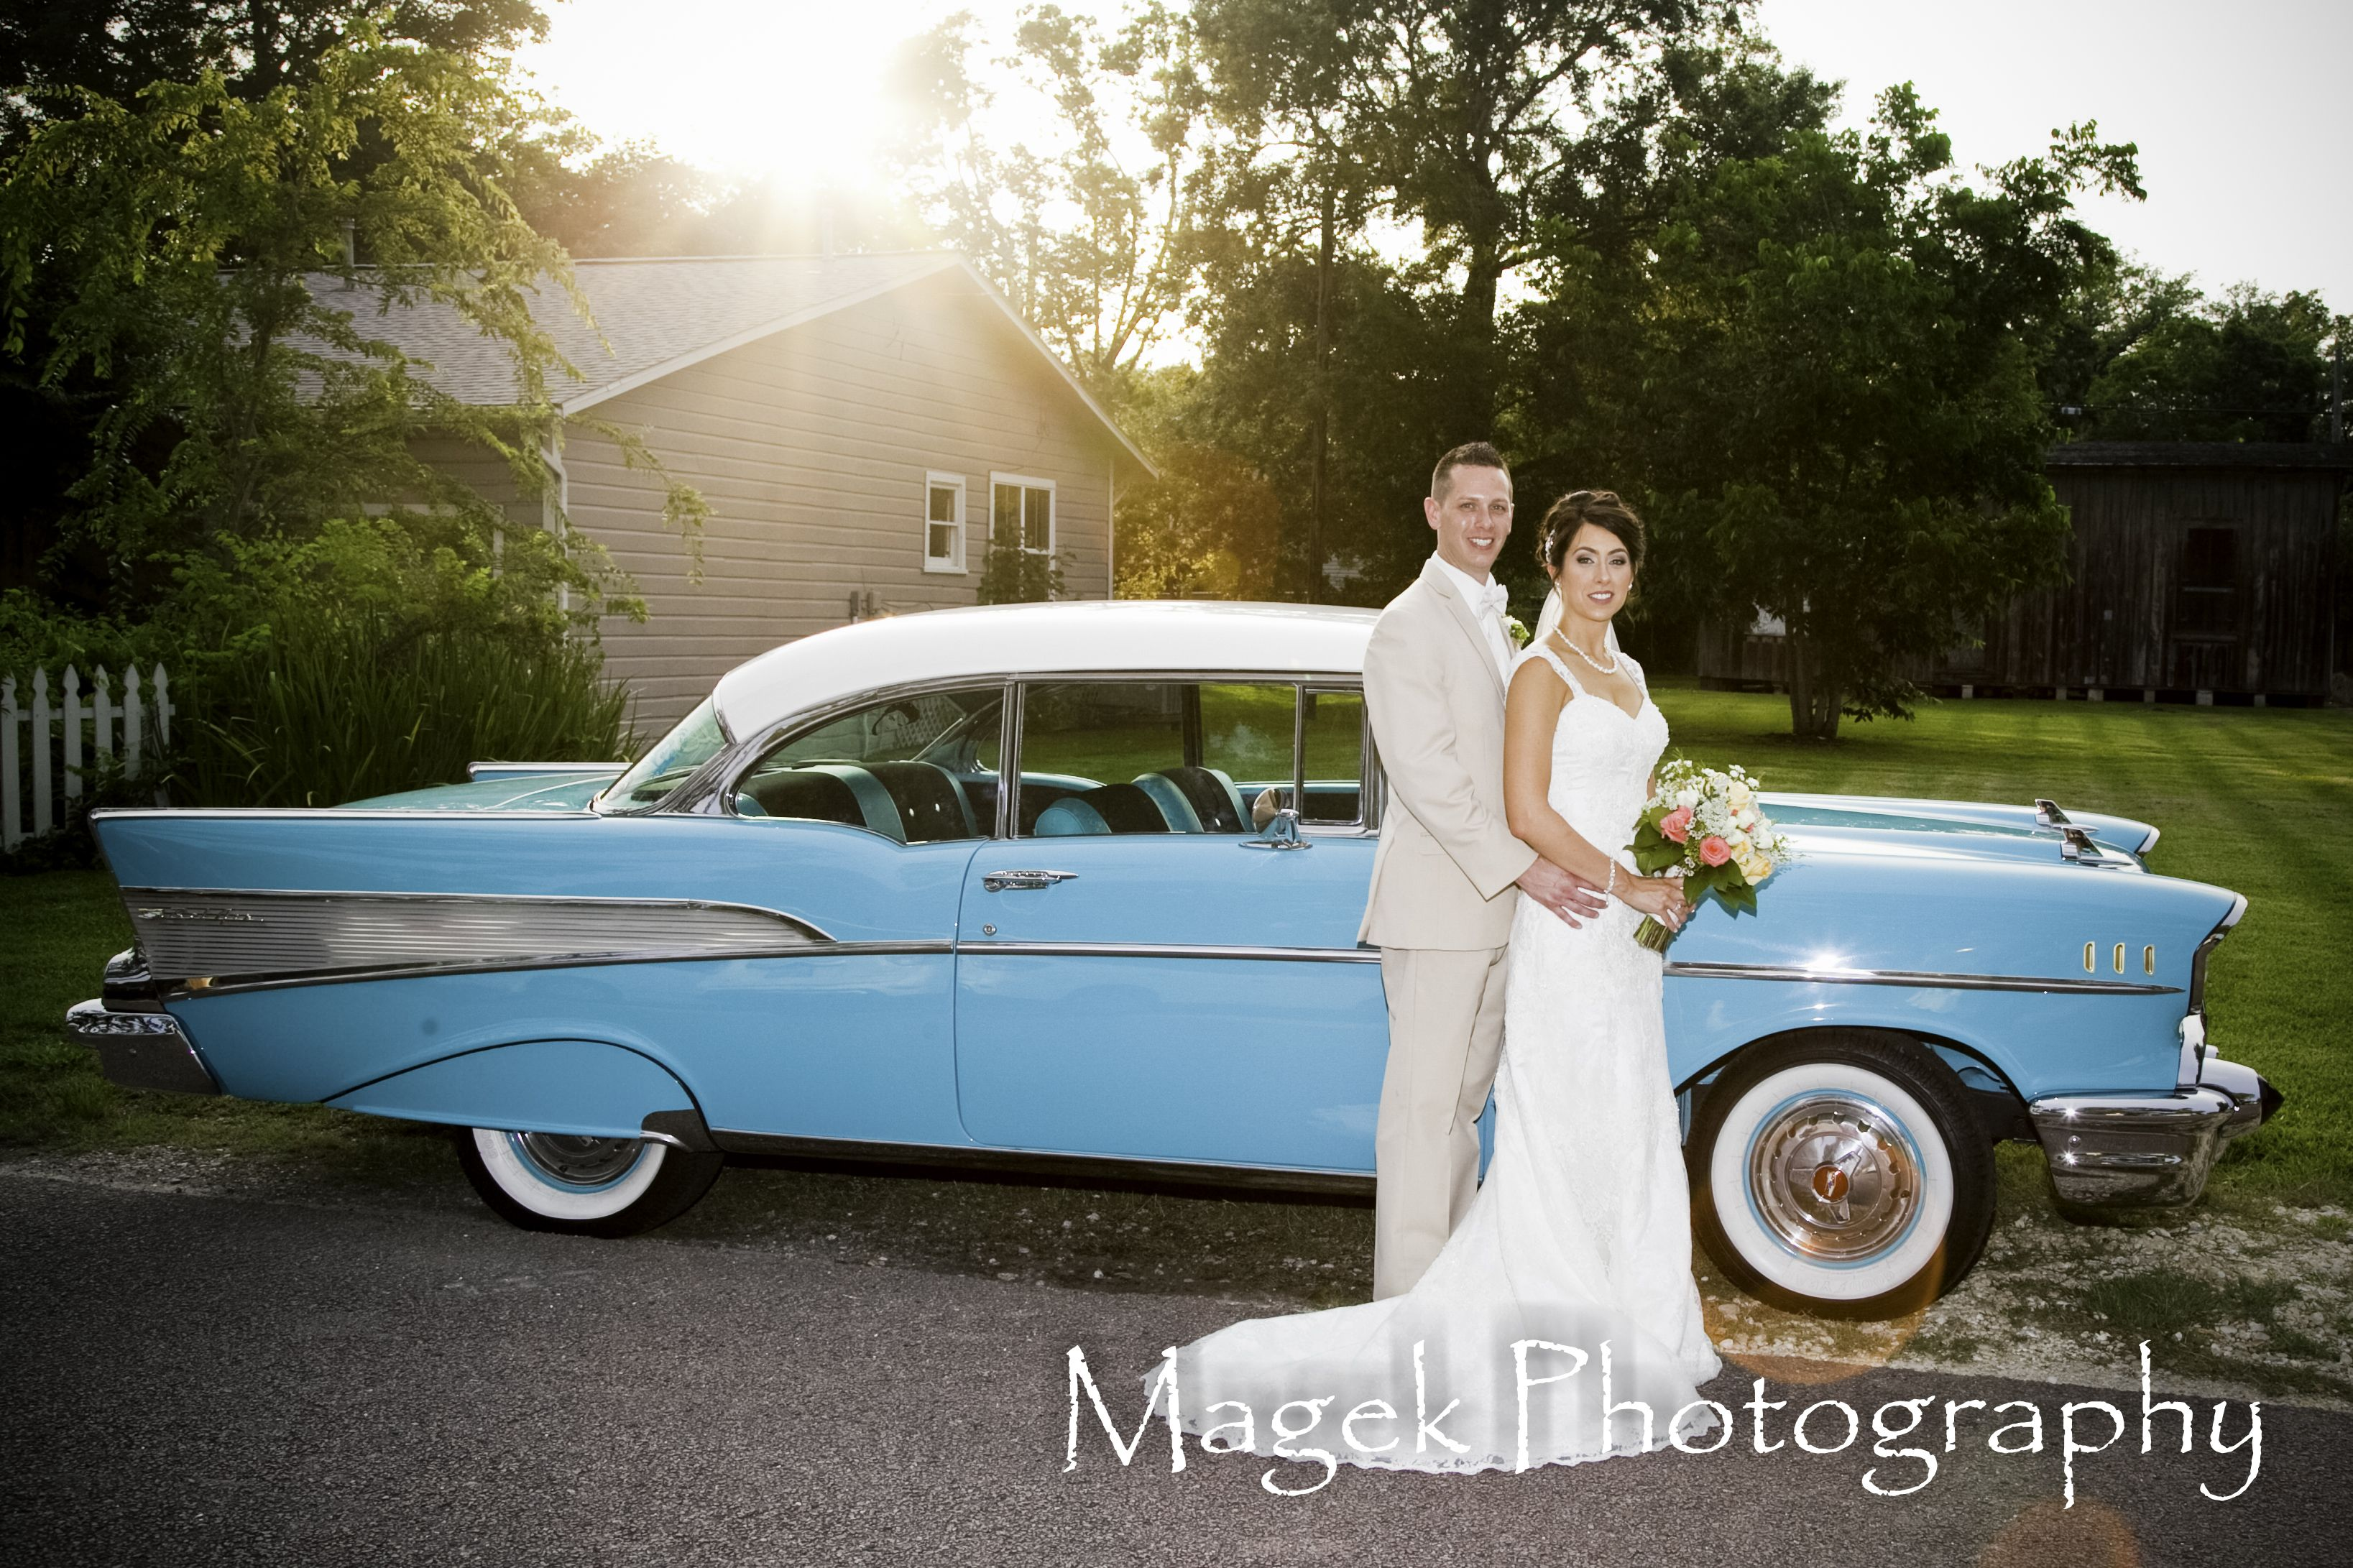 Wedding Photo ideas, with an old style car. Taken by Magek ...